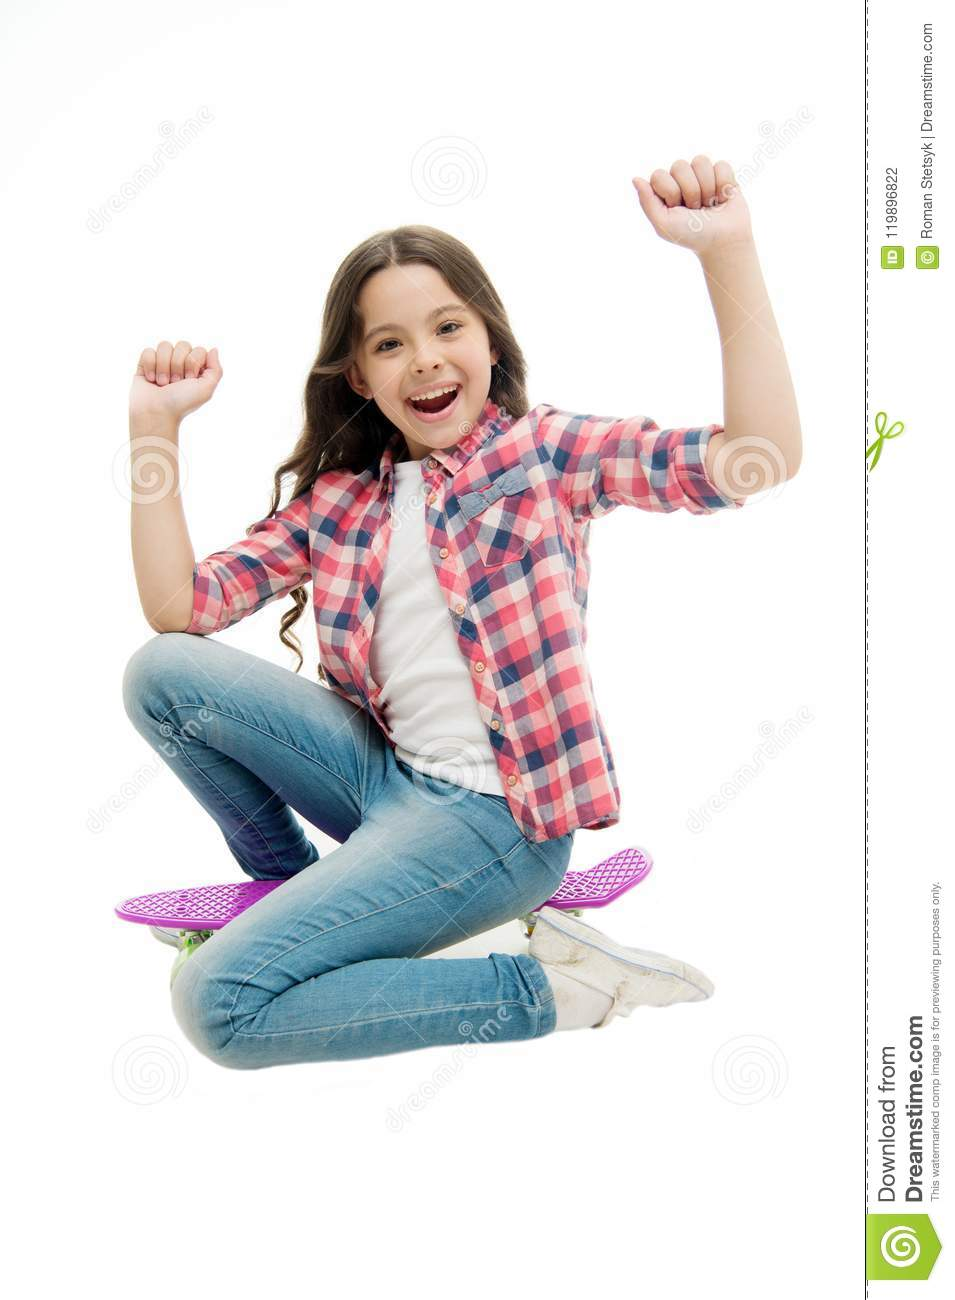 Time to ride. Kid girl excited sits penny board. Modern teen hobby. Girl happy face sit on penny board white background